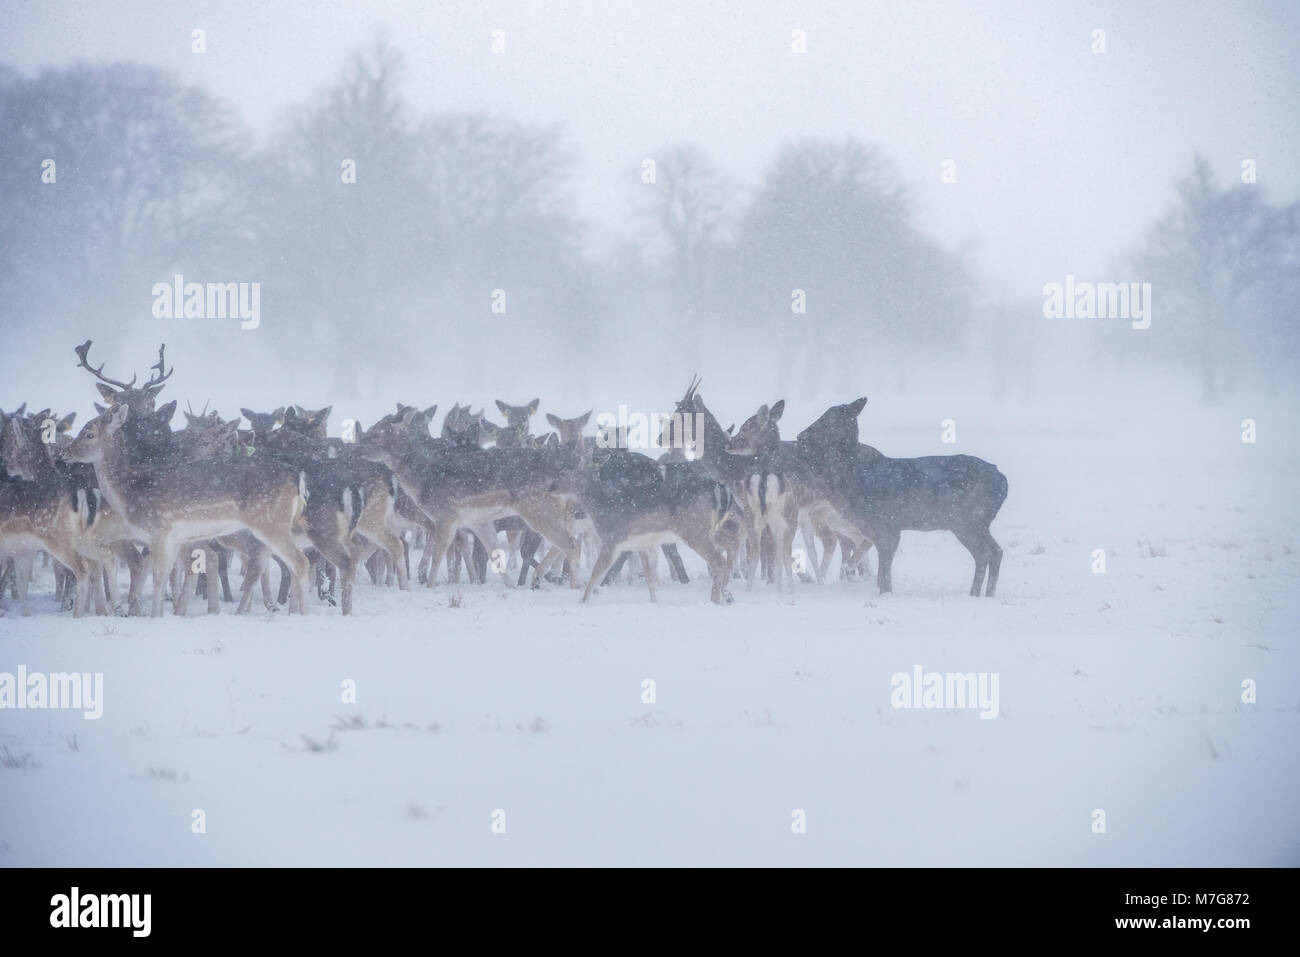 Deers at Phoenix Park in Dublin - Ireland - Stock Image